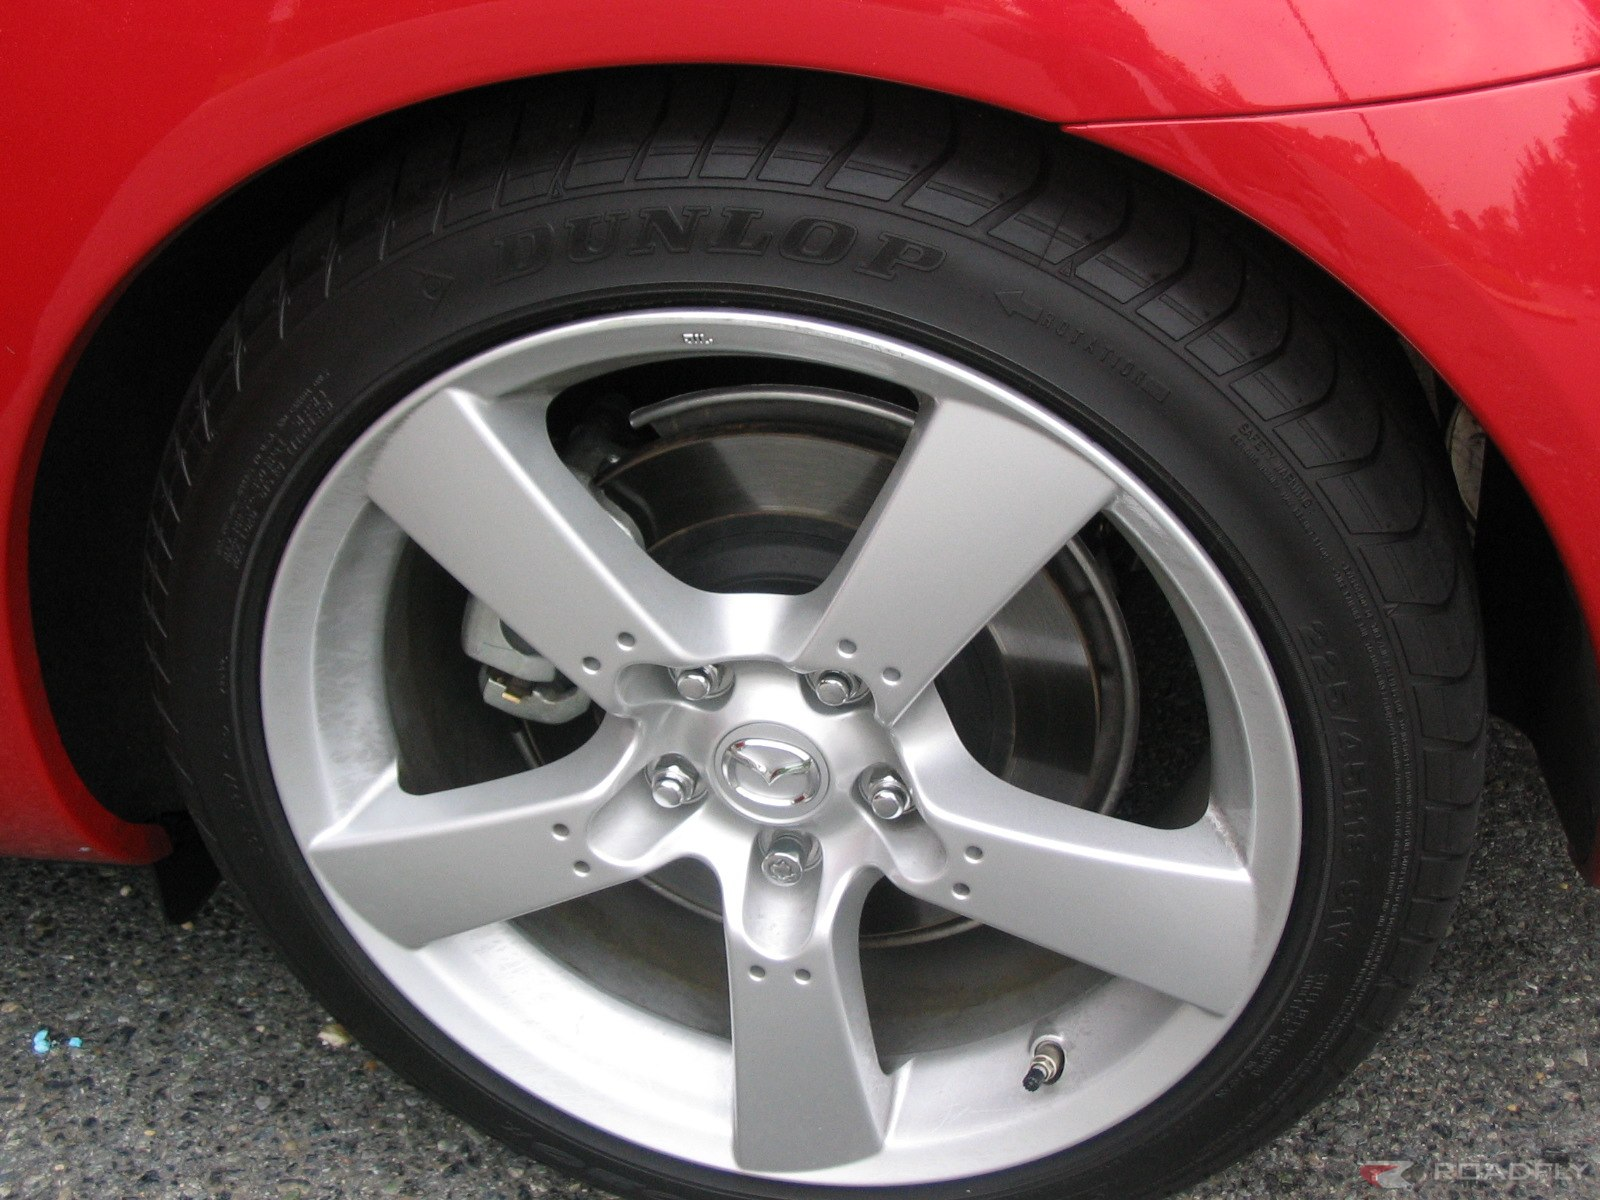 Mazda RX-8 wheels #3